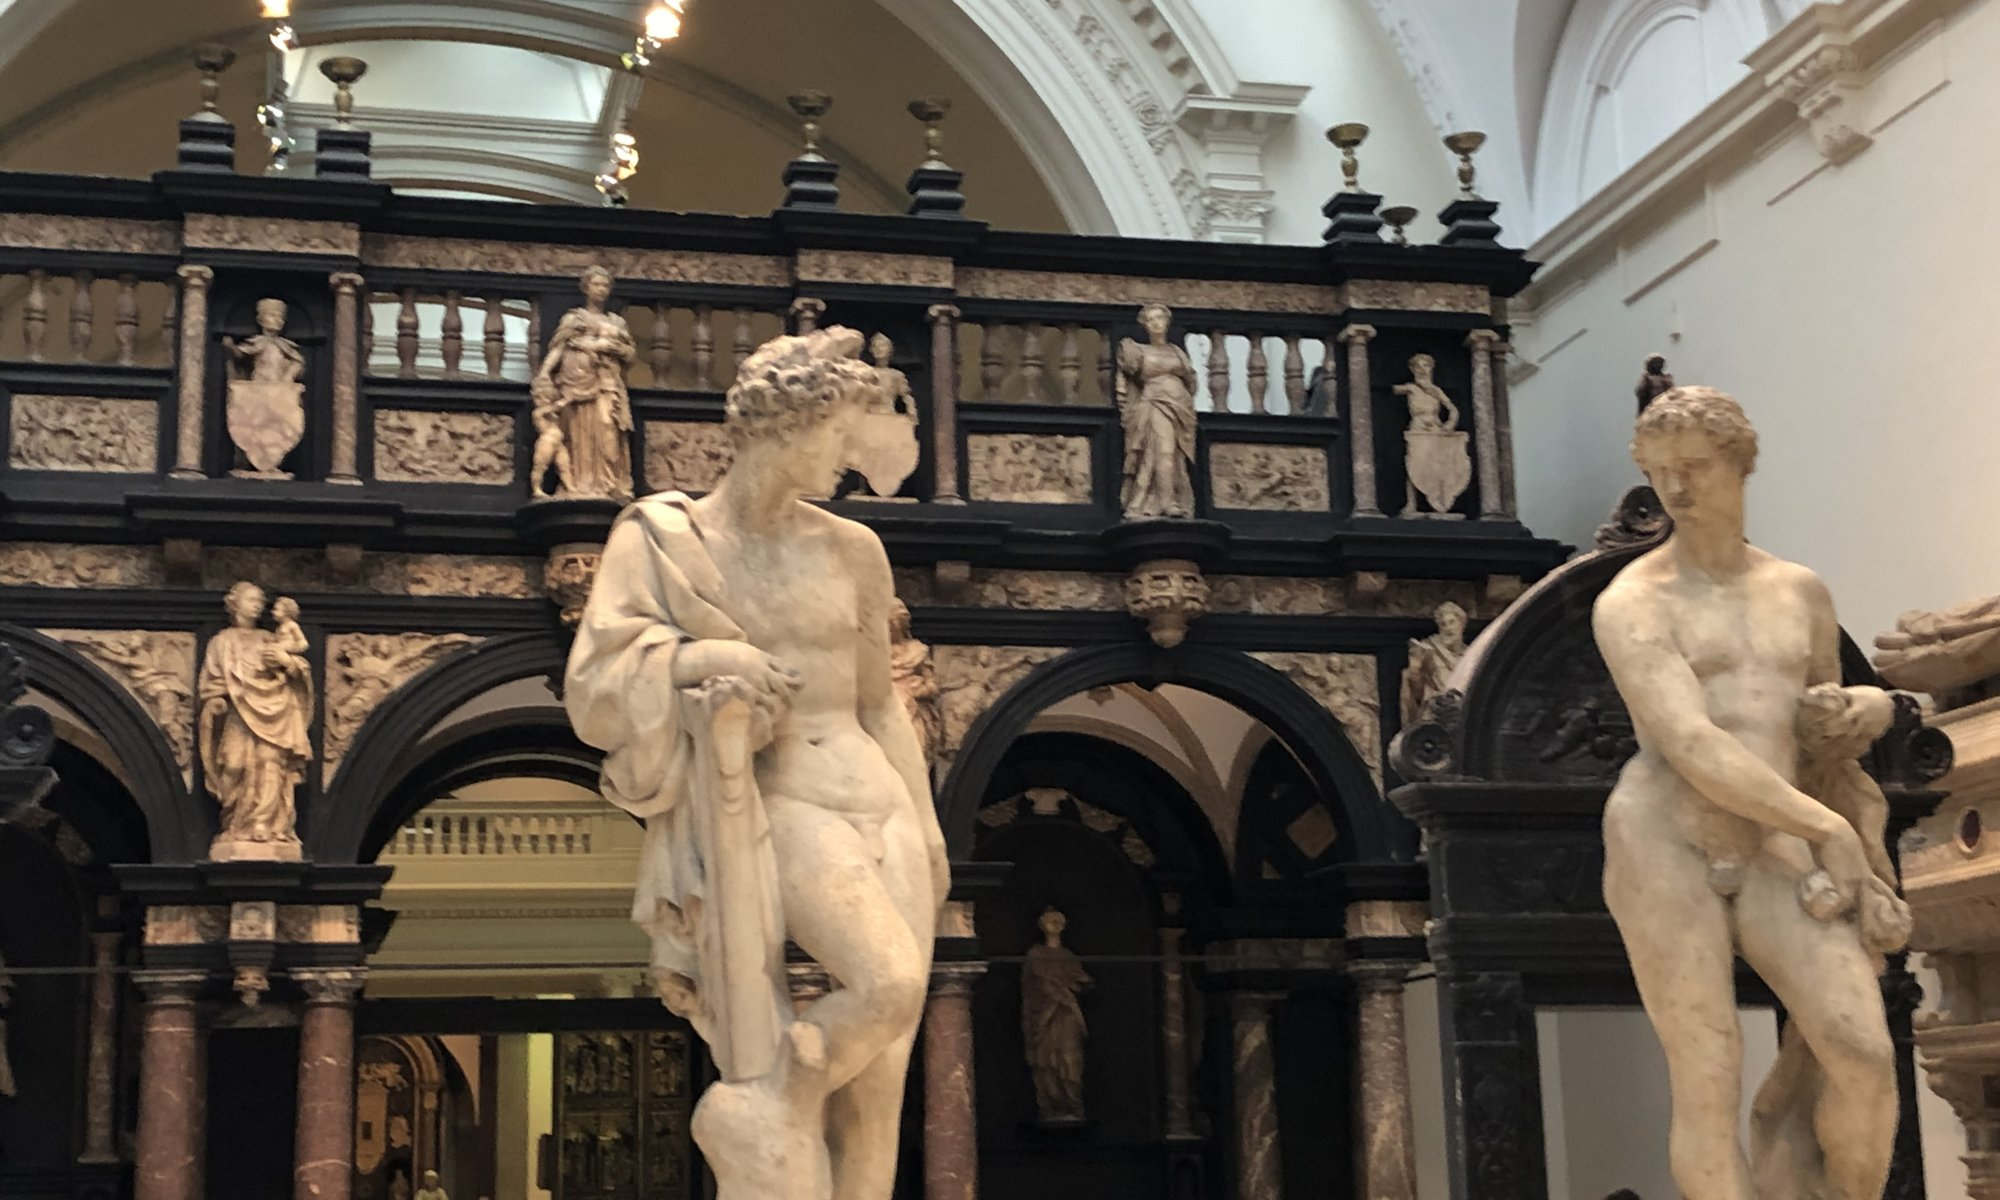 The Victoria & Albert Museum, London